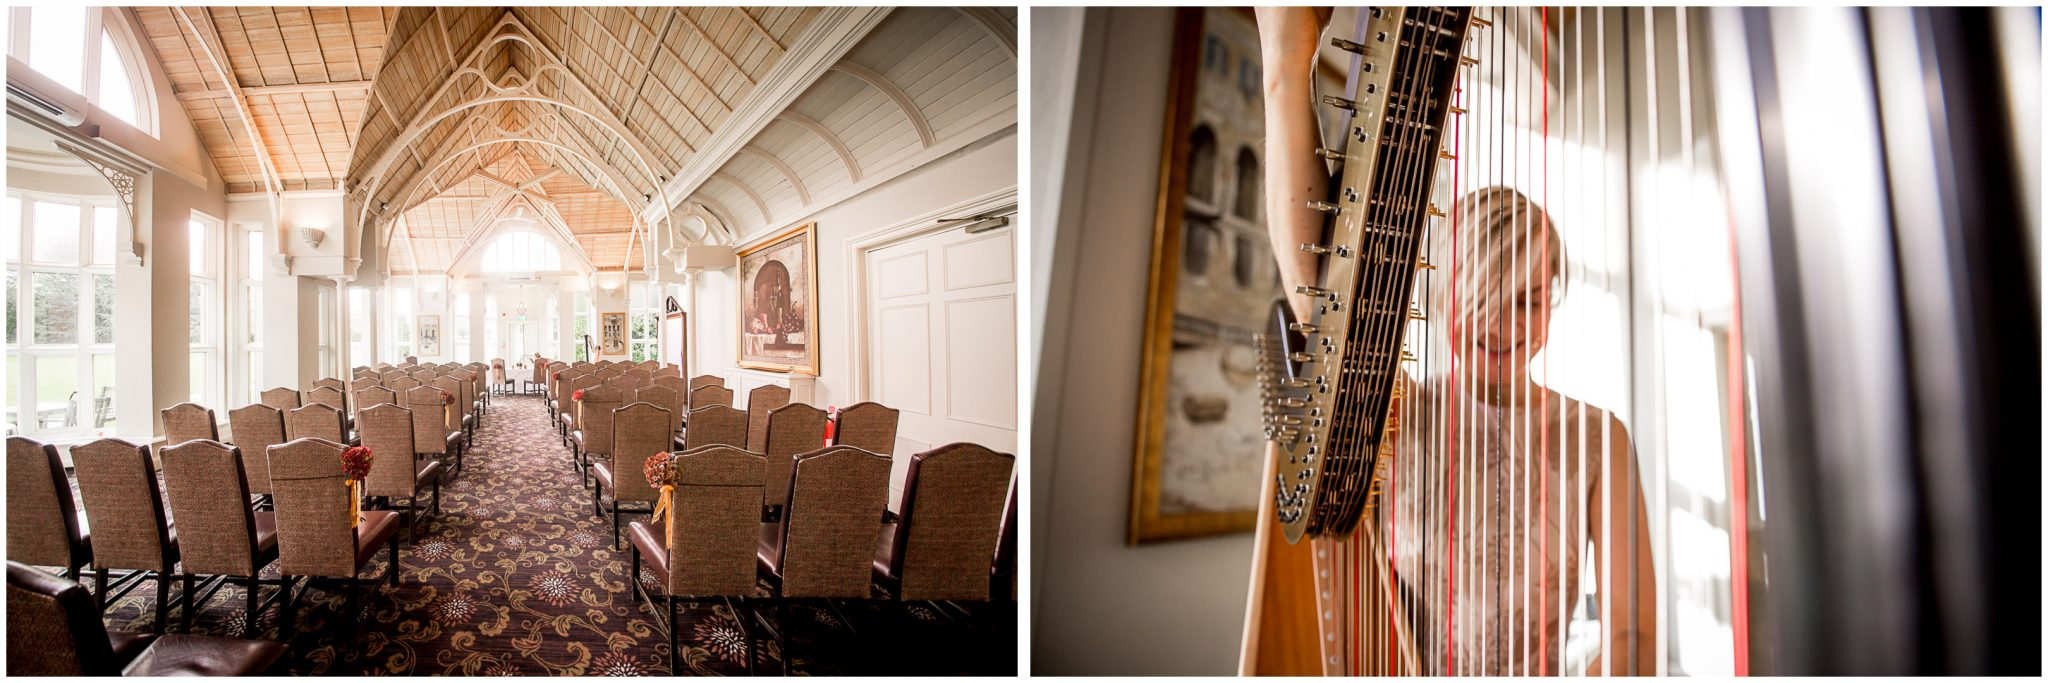 Audleys Wood wedding photograhy ceremony room